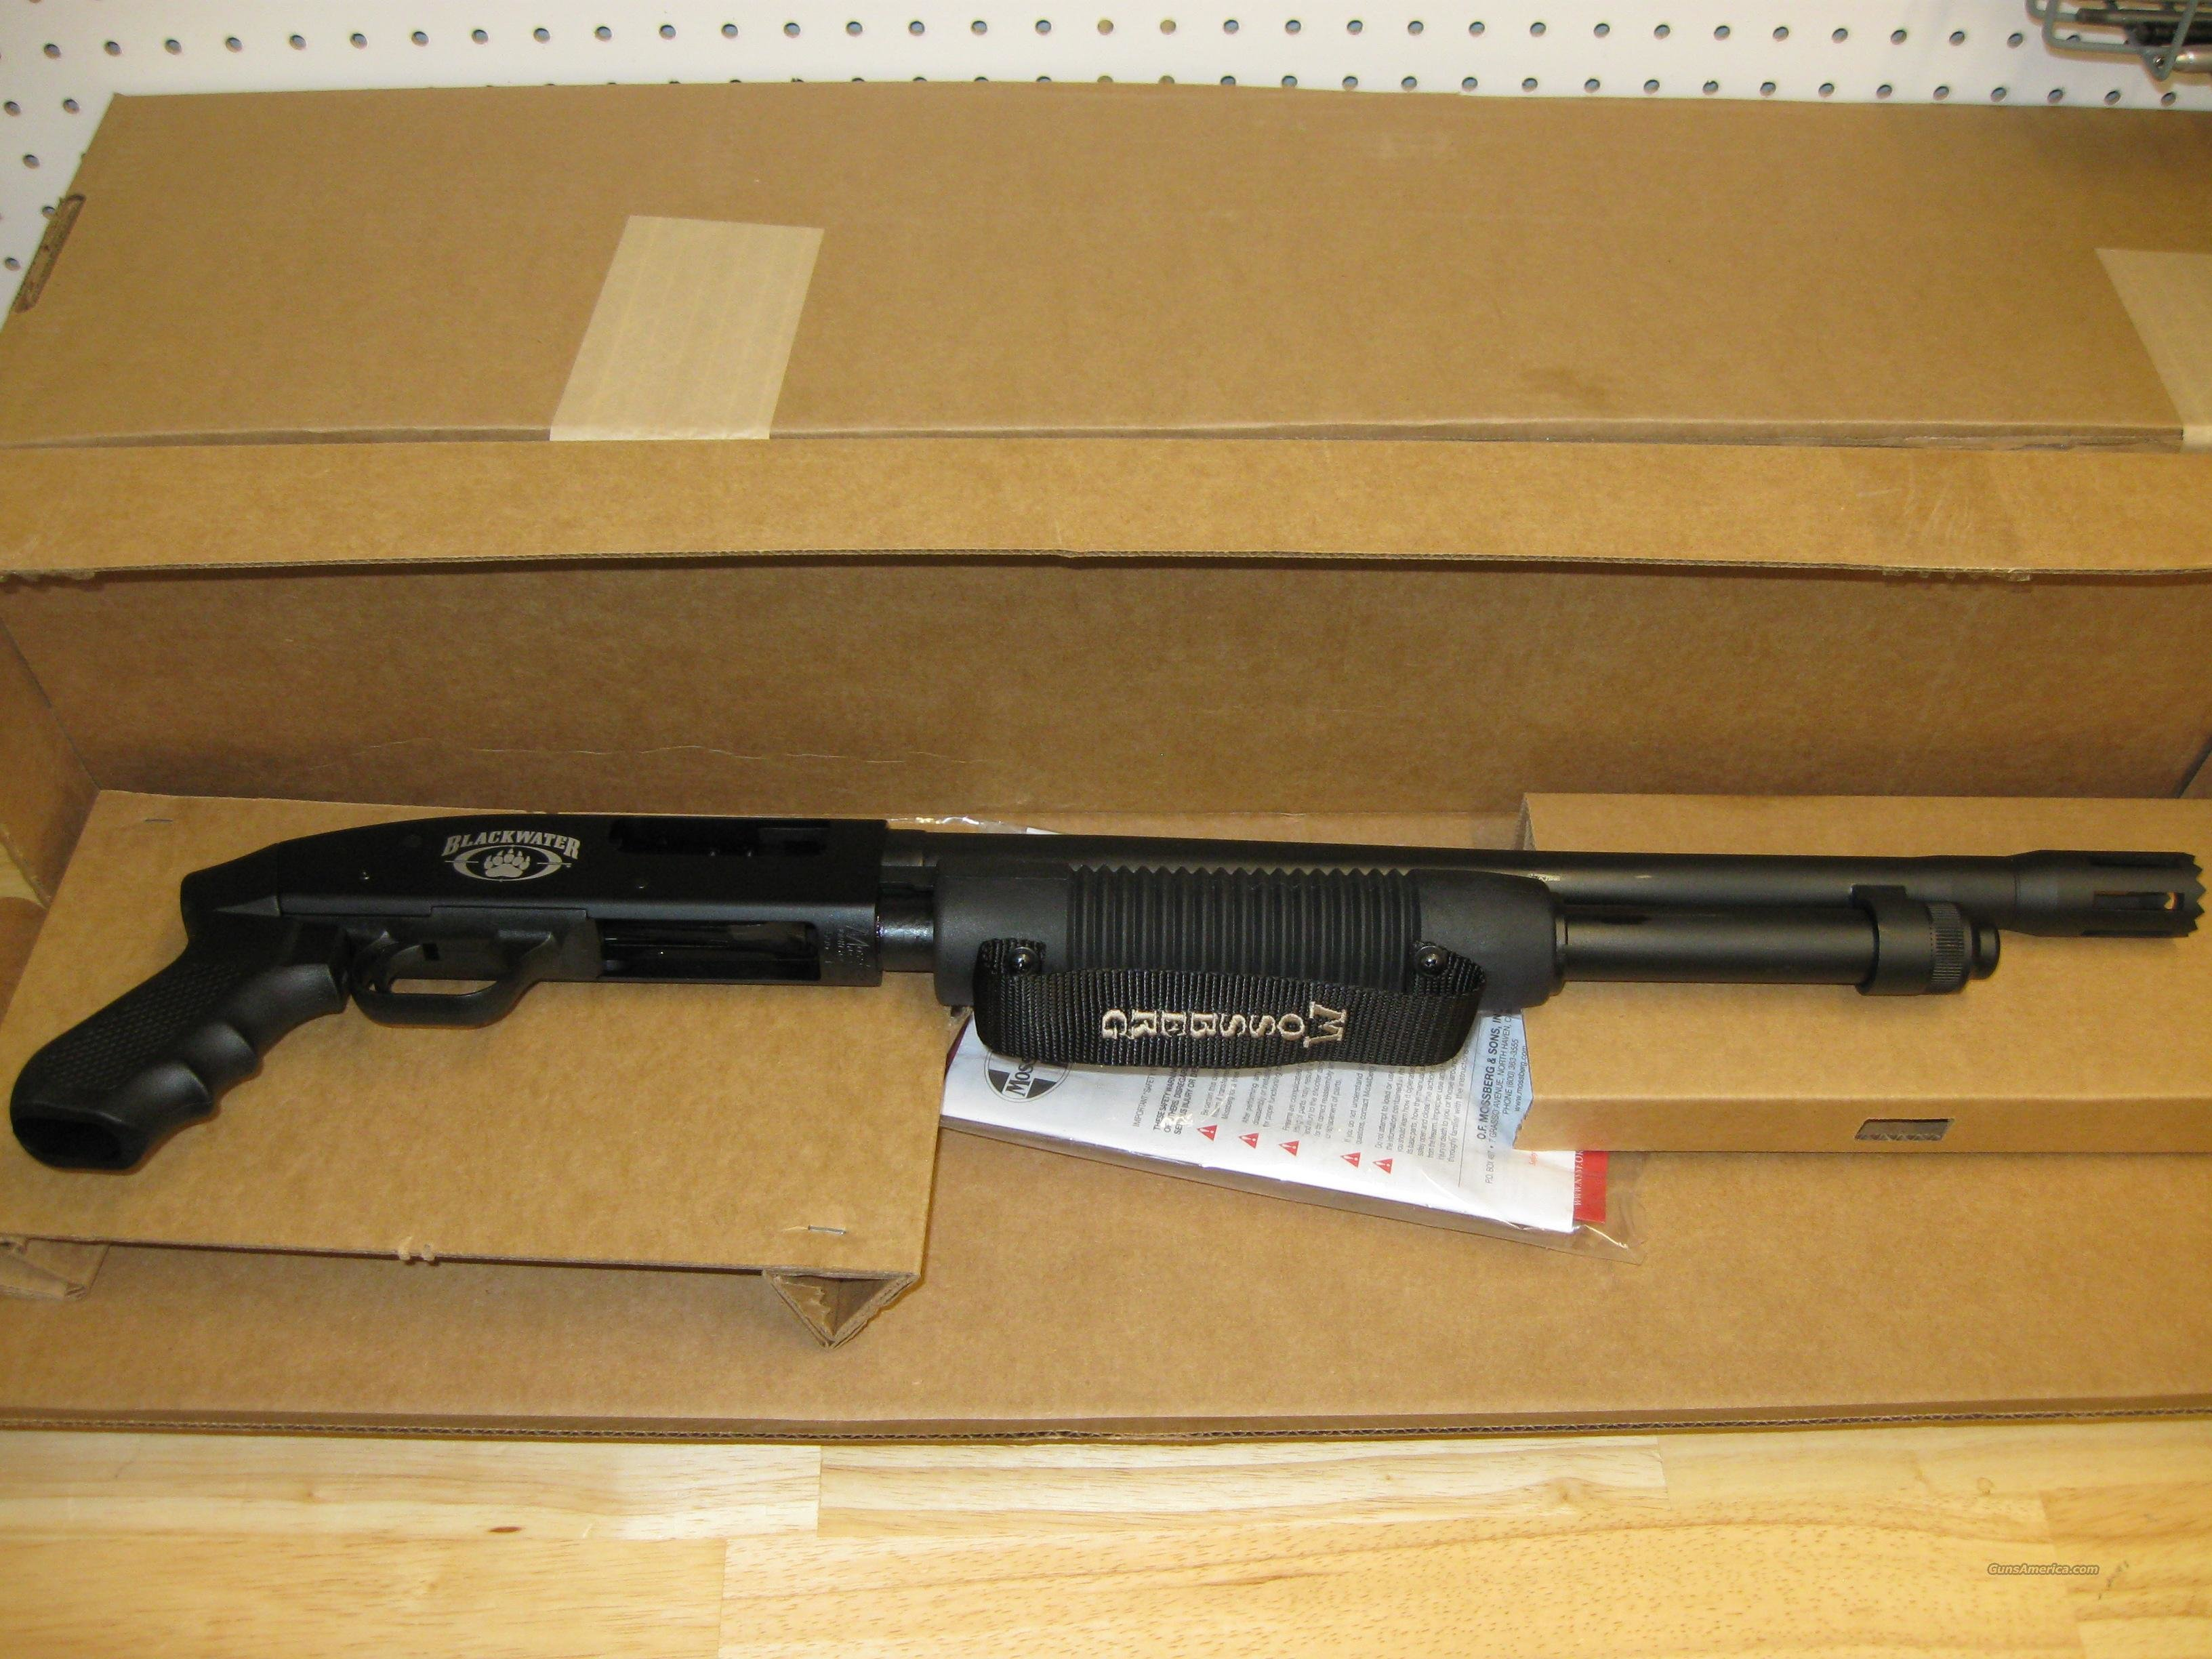 Mossberg 500 Blackwater Shotgun 54123, 12 Gauge, 18.5 in, 3 in Chmbr, Synthetic Pistol Grip Stock, Black Finish  Guns > Shotguns > Mossberg Shotguns > Pump > Tactical